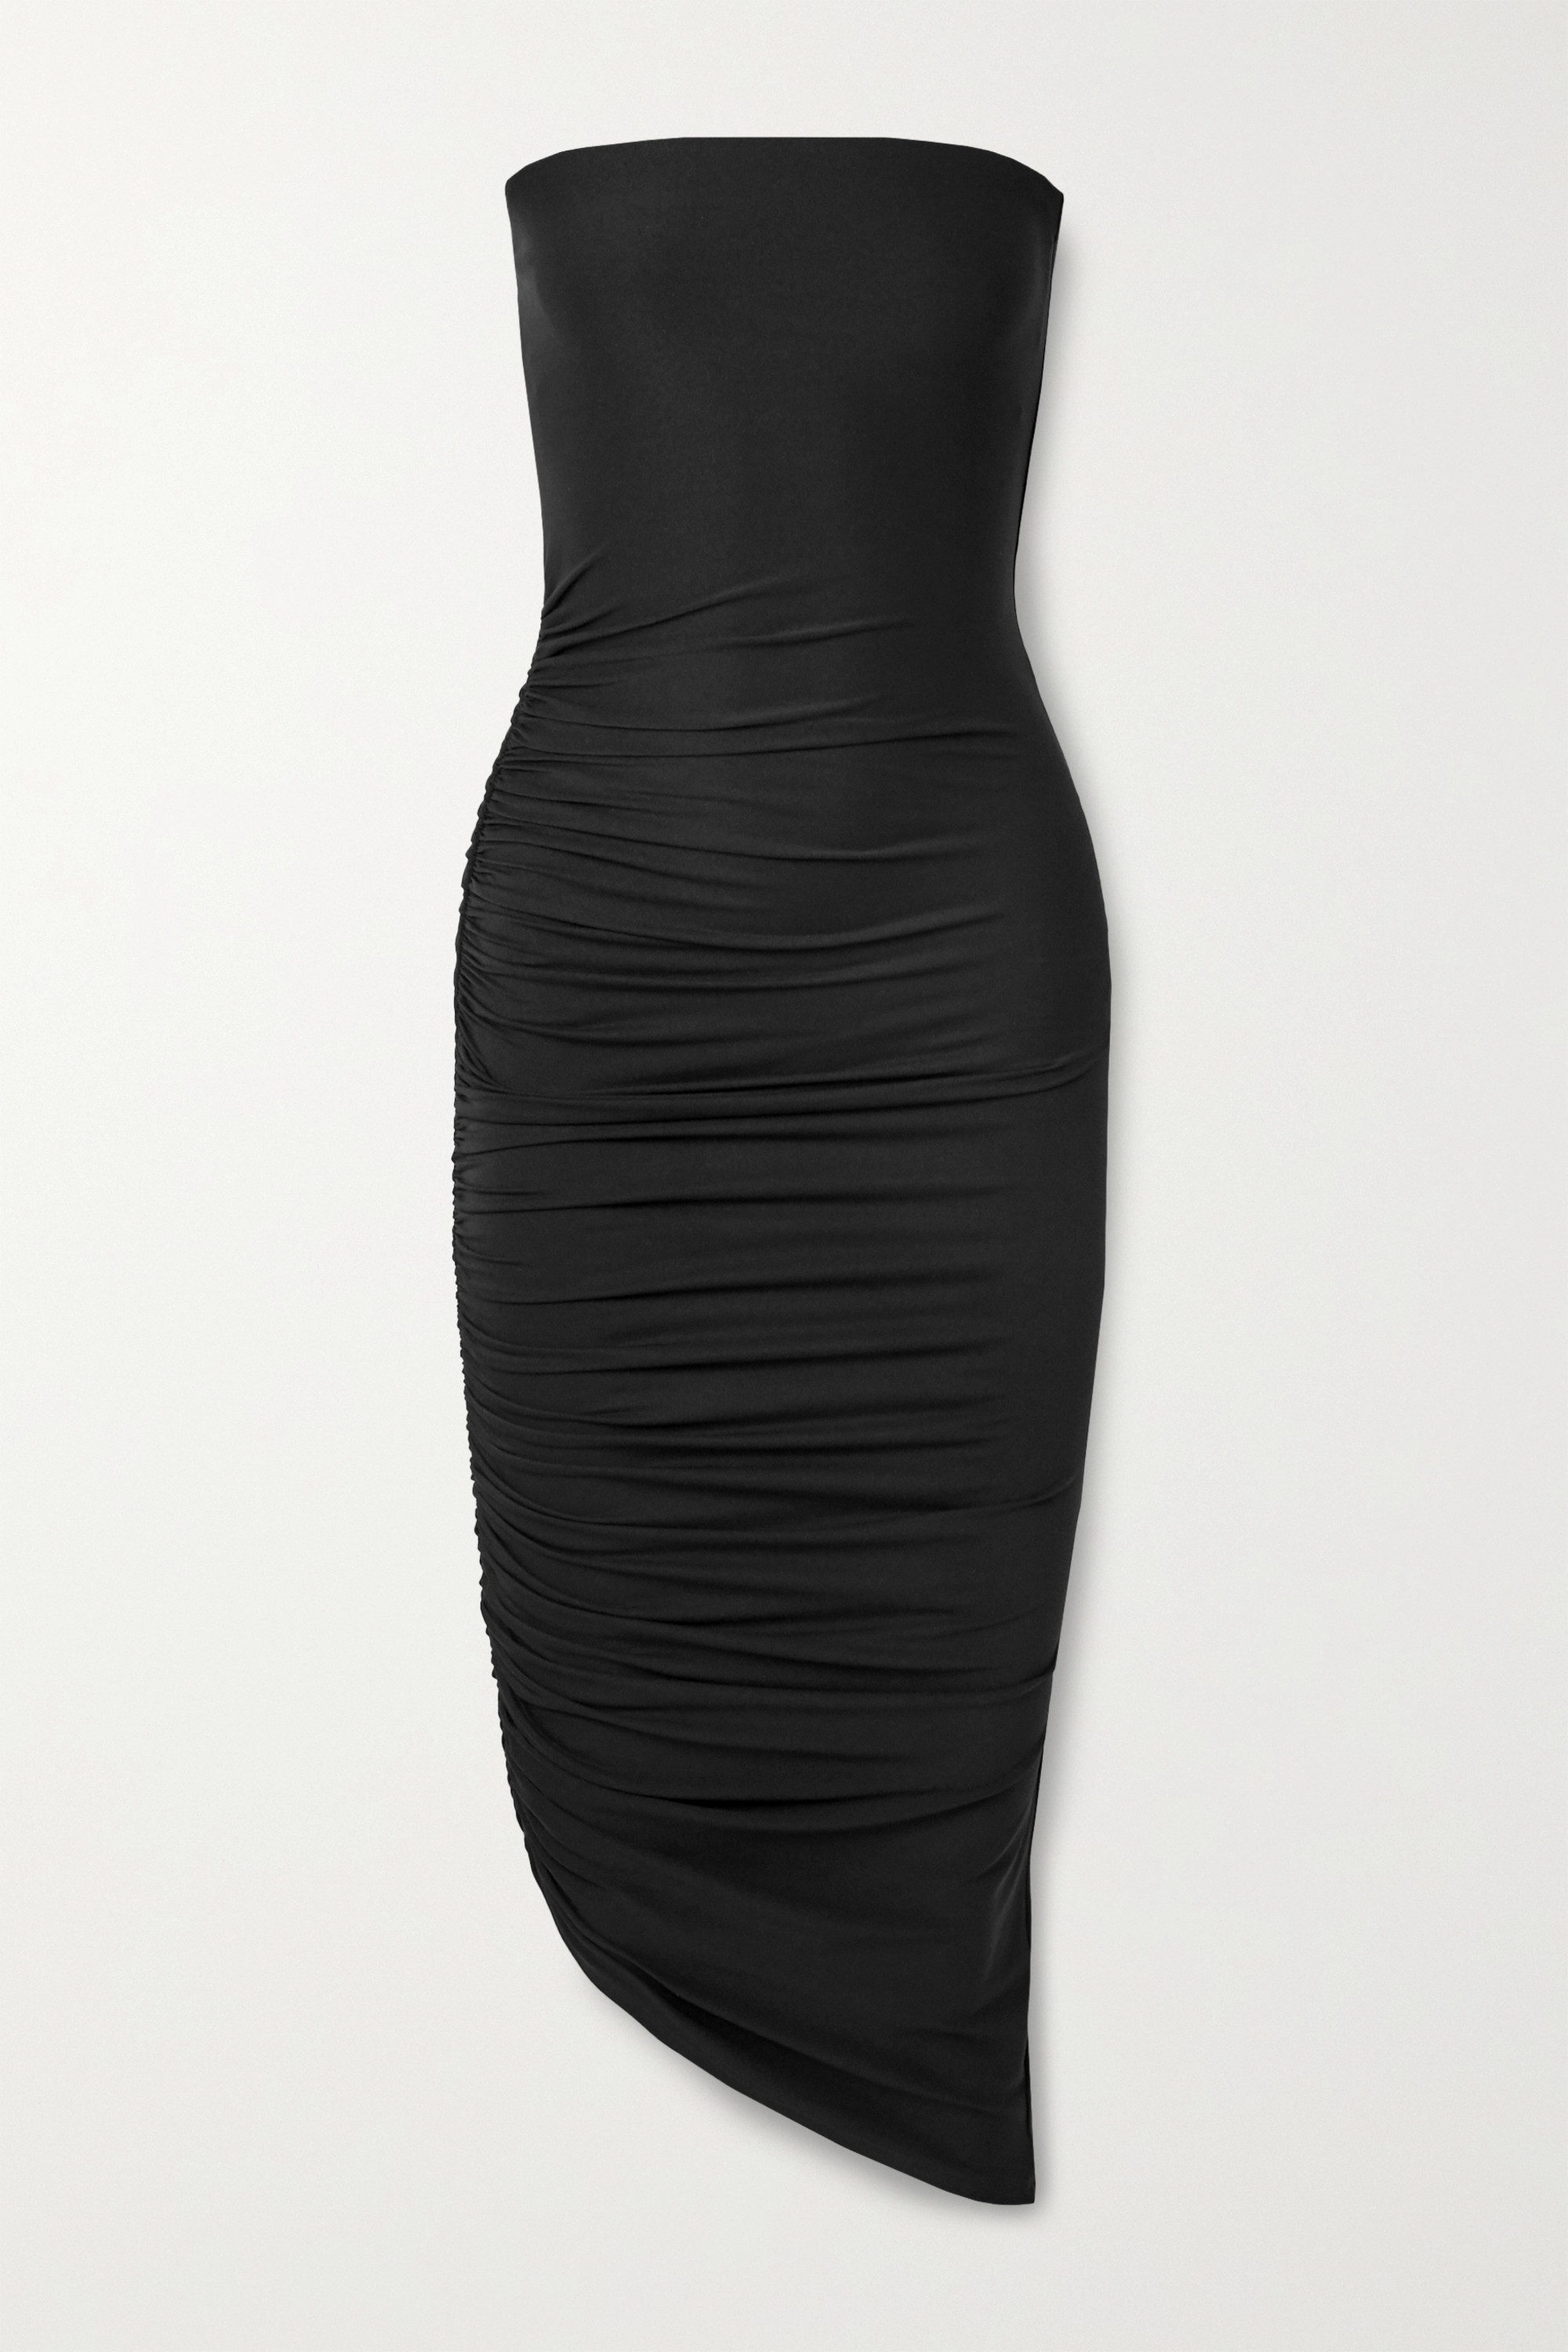 Alix NYC Crawford strapless asymmetric ruched stretch-jersey dress